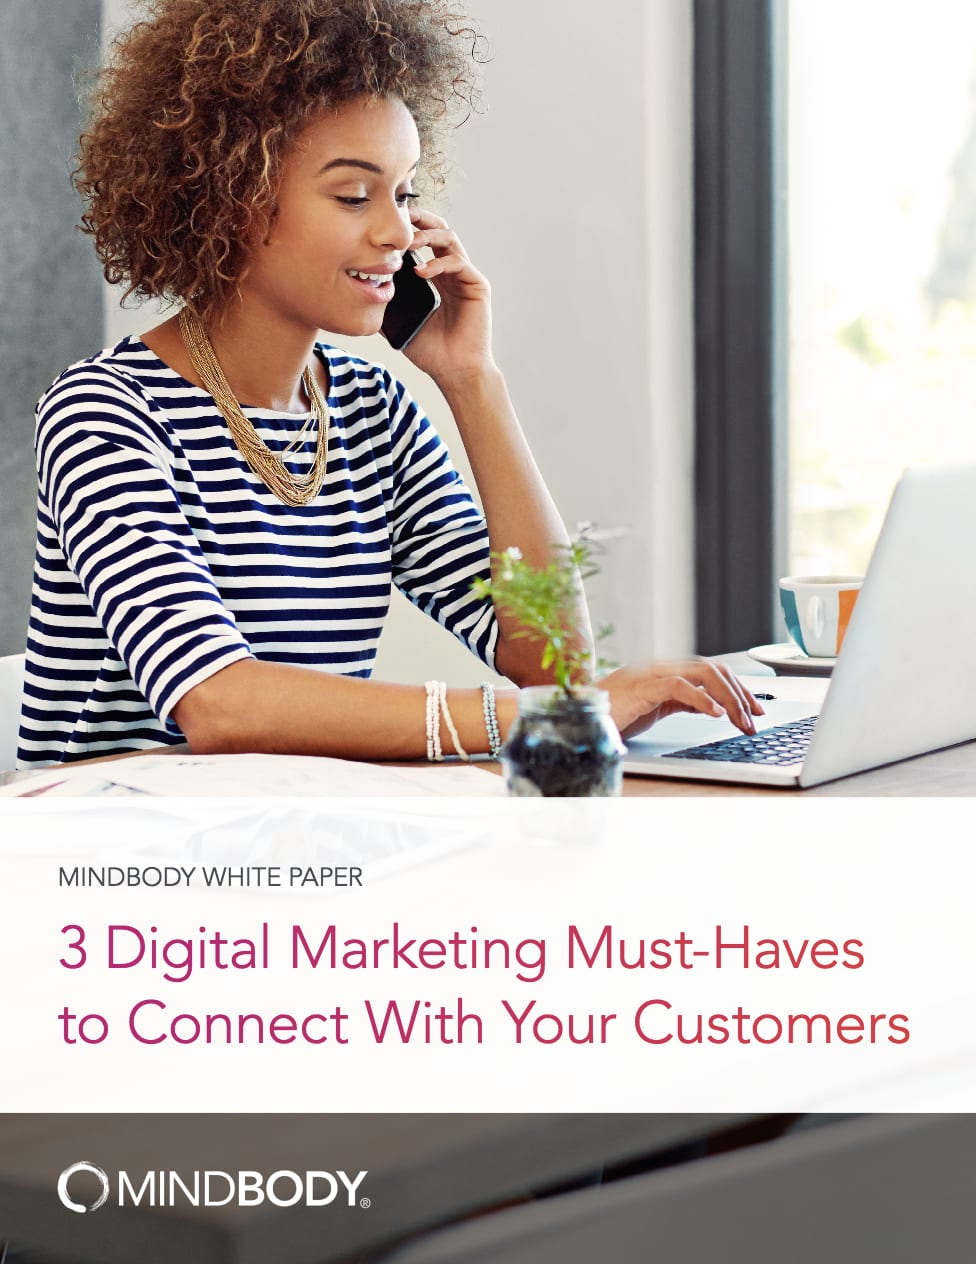 3 Digital Marketing Must-Haves to Connect With Your Customers